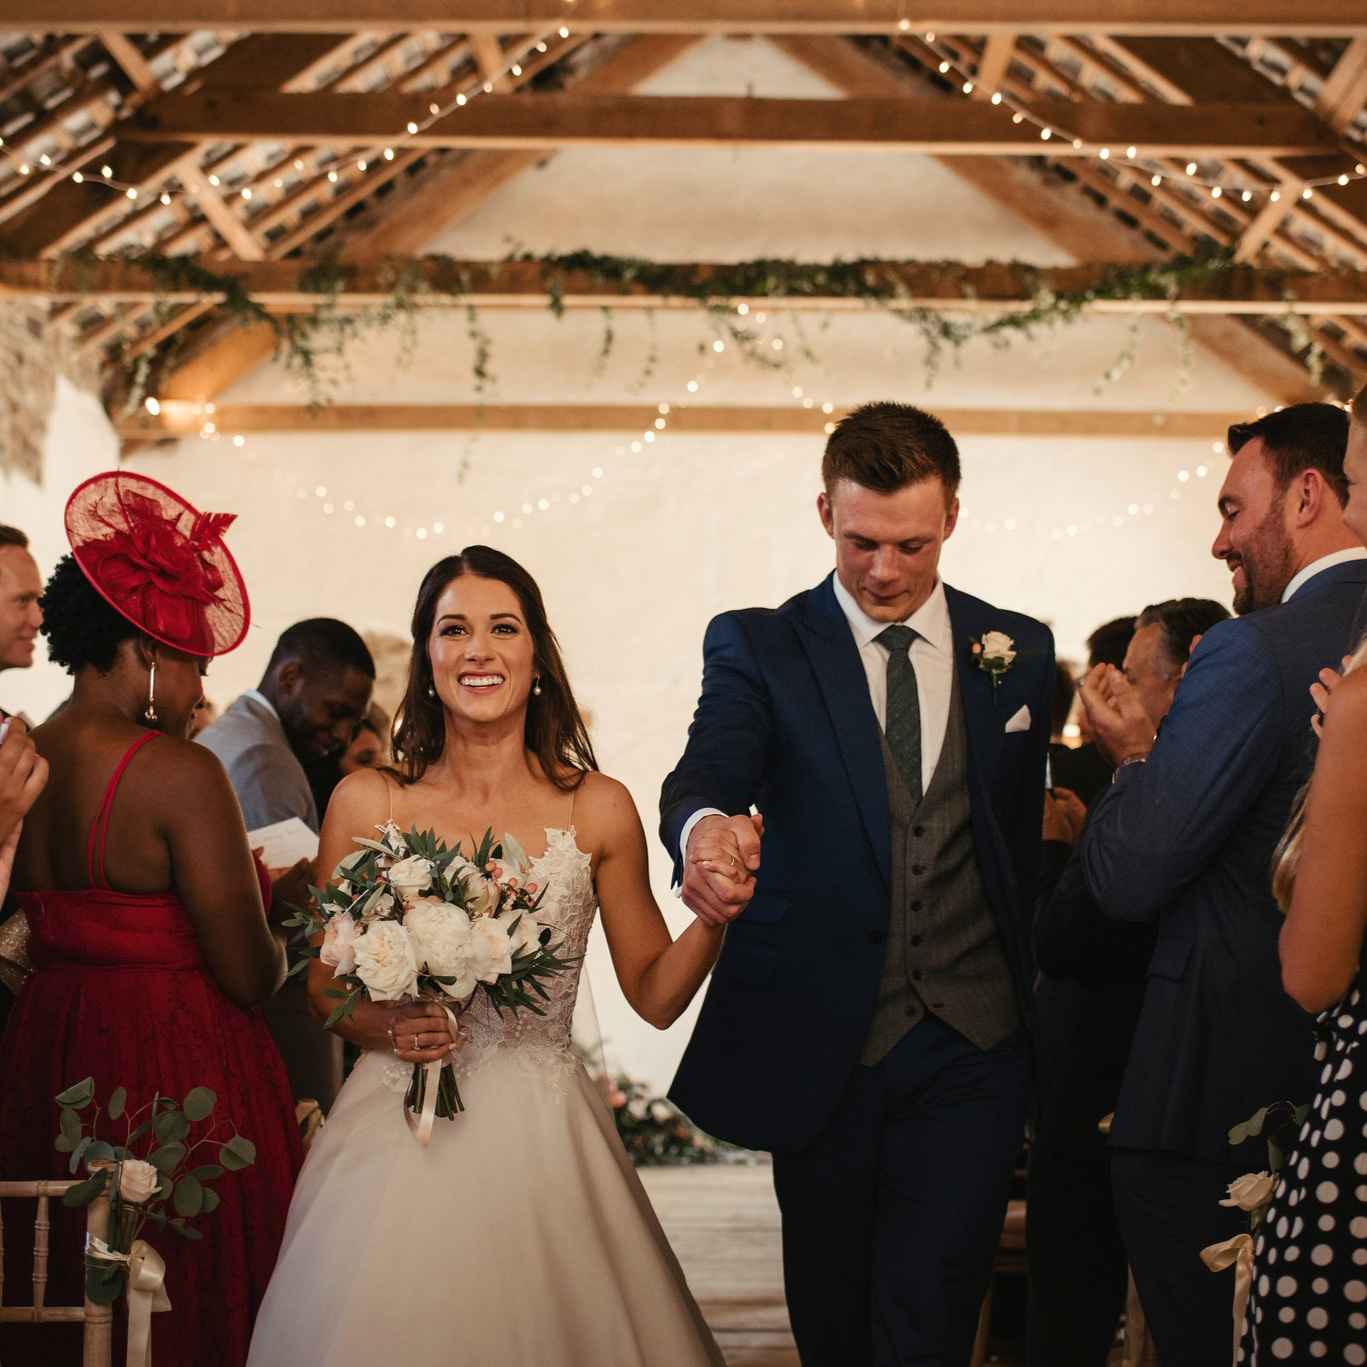 Mary-Anne & Sam - Shaun coordinated our wedding with his 'on the day' service and we can't recommend him highly enough.From the first call, we felt confident that he fully understood what we wanted and would be able to provide a service that would be personal and thoughtful. Assisting from set up to pack down, his unfailing energy meant he seemed to be everywhere at once.On the day, Shaun's easy going nature meant that he fitted in almost as a guest however managed to imperceptibly make sure everyone was enjoying themselves and that everything was going to plan while also taking care of the finer details.We enjoyed every moment of our wedding day and really feel a huge part of this was down to Shaun.Asking Shaun to coordinate our wedding was one of the best planning decisions we made - he made our vision a reality and the peace of mind he gives is just invaluable.Every needs a Shaun!